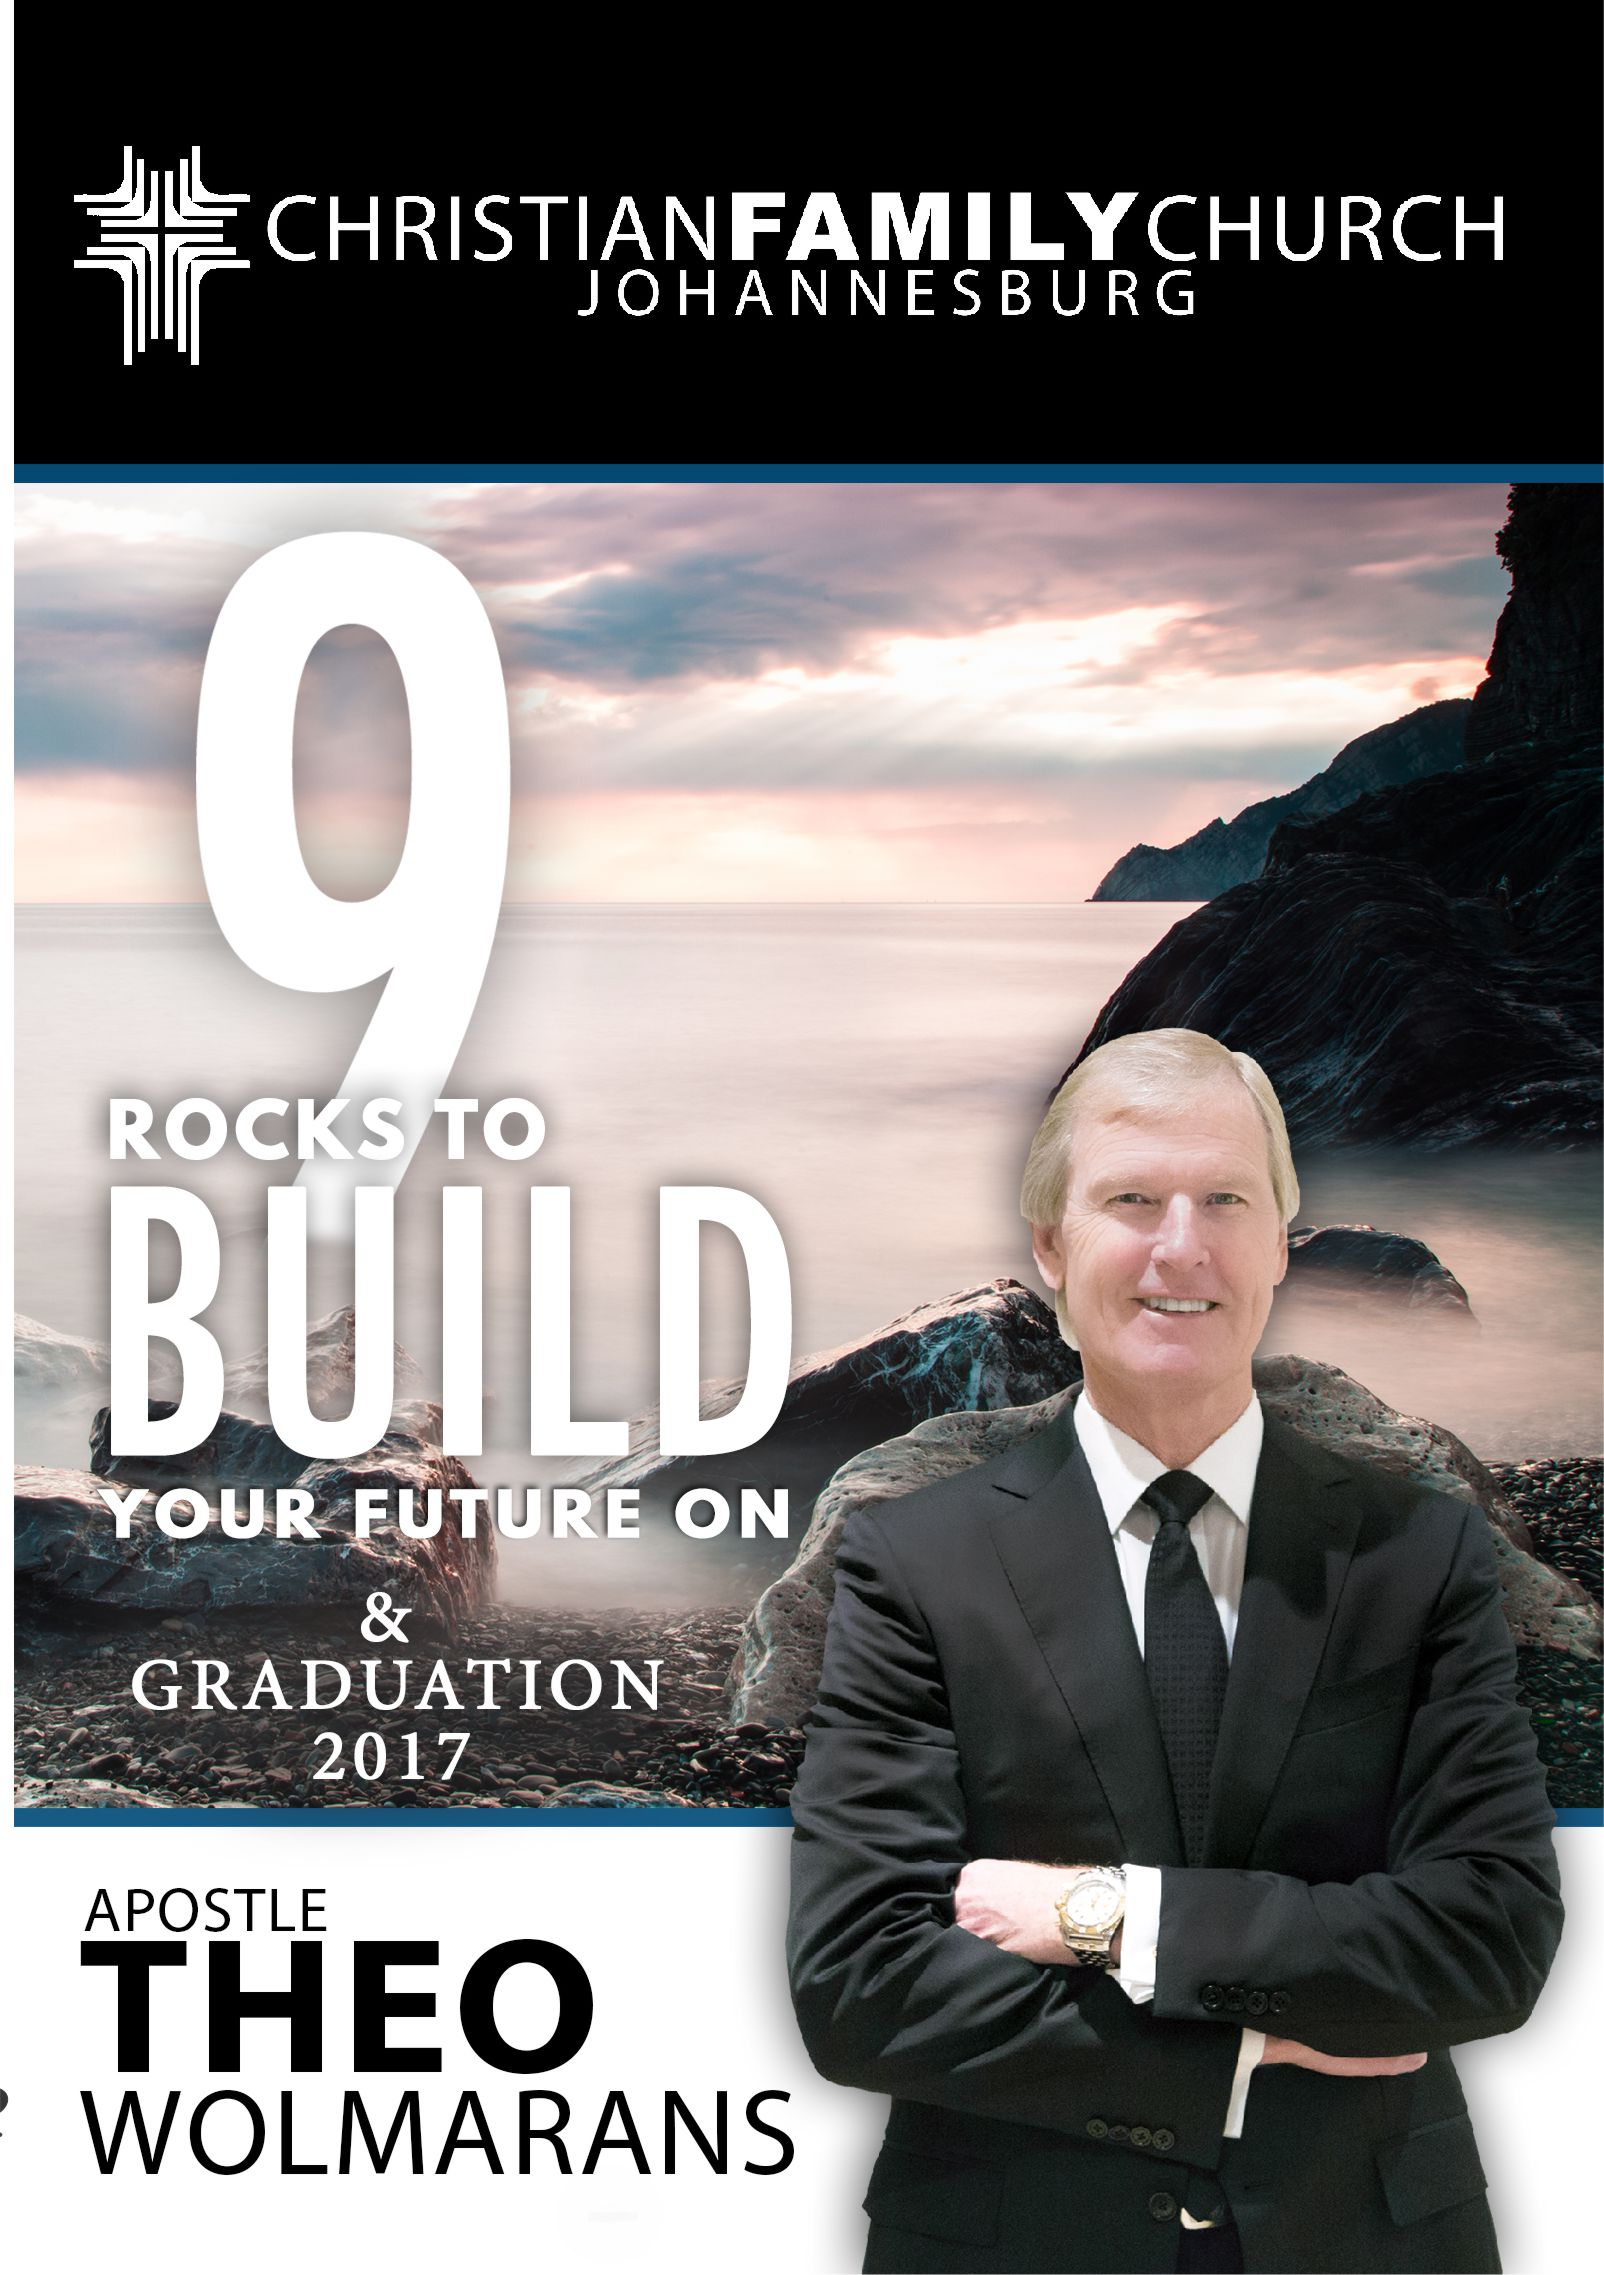 9 Rocks to build your future on